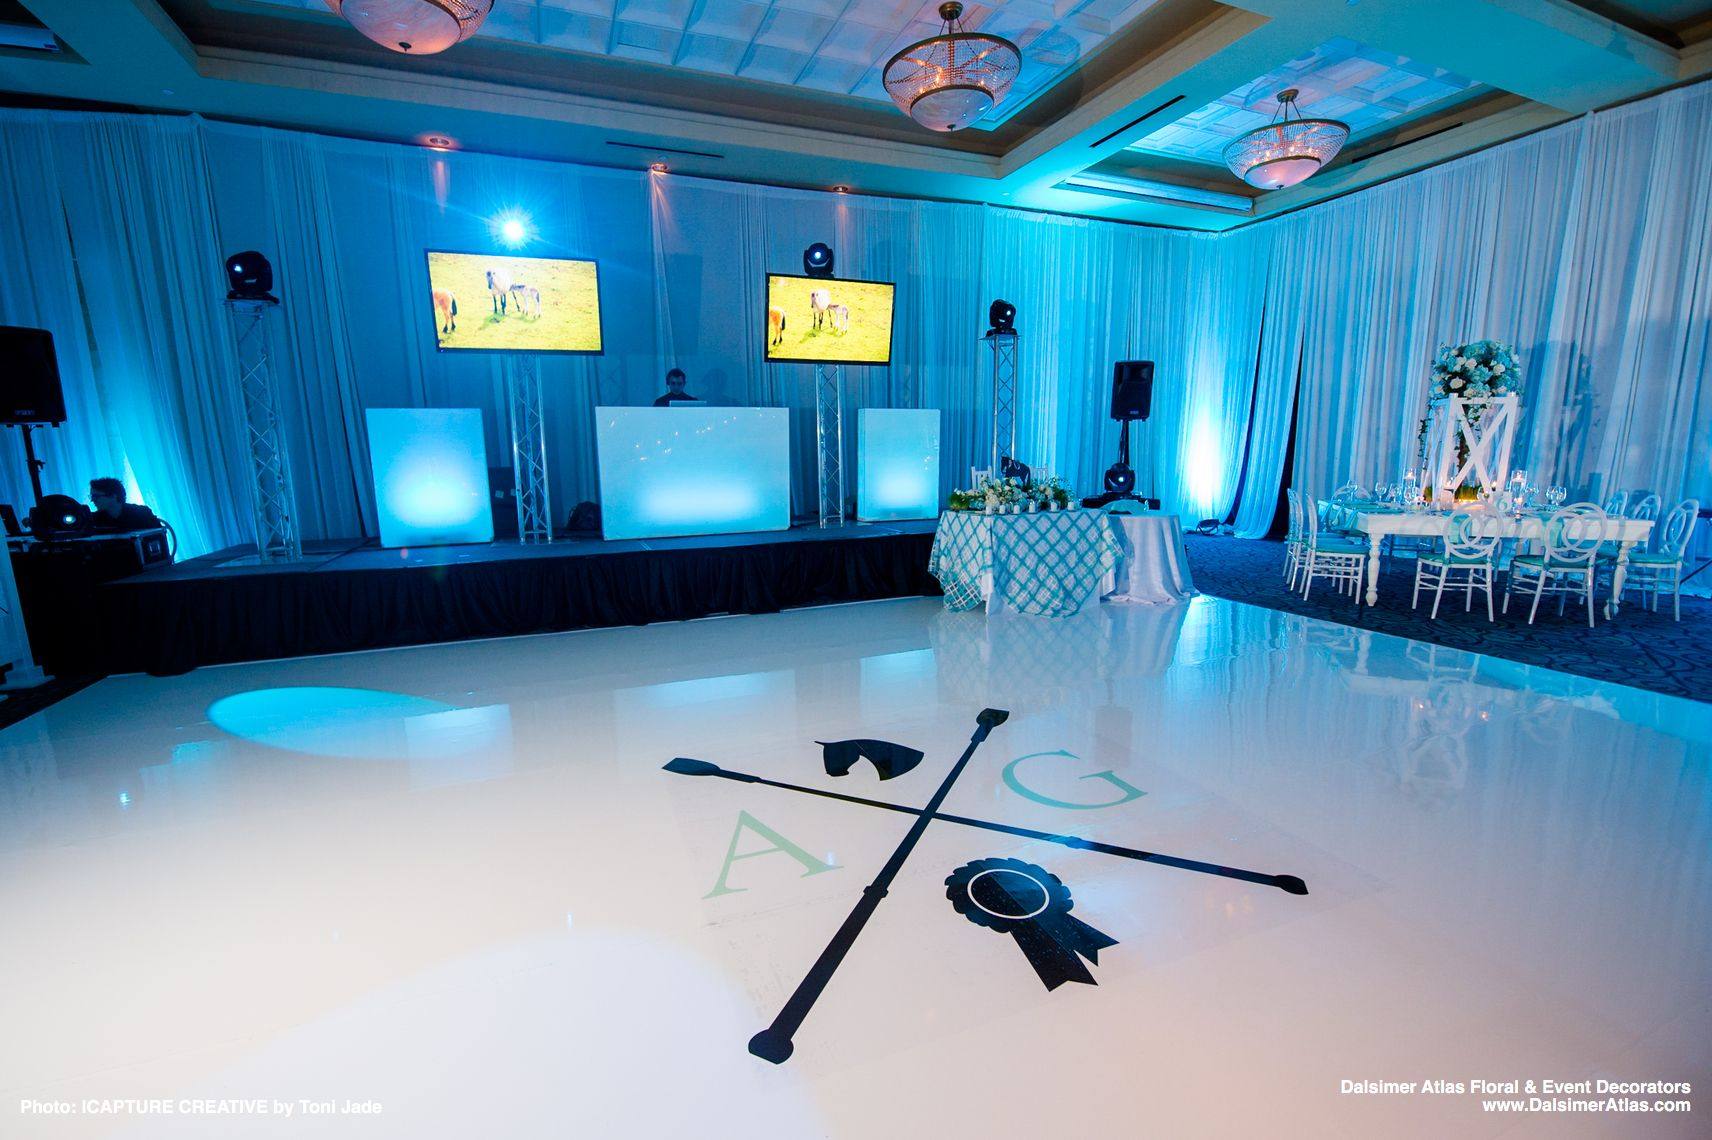 mitzvah-theme-decorations-bat-mitzvah-congregation-kol-tikvah-parkland-florida-dalsimer-atlas-042618-33